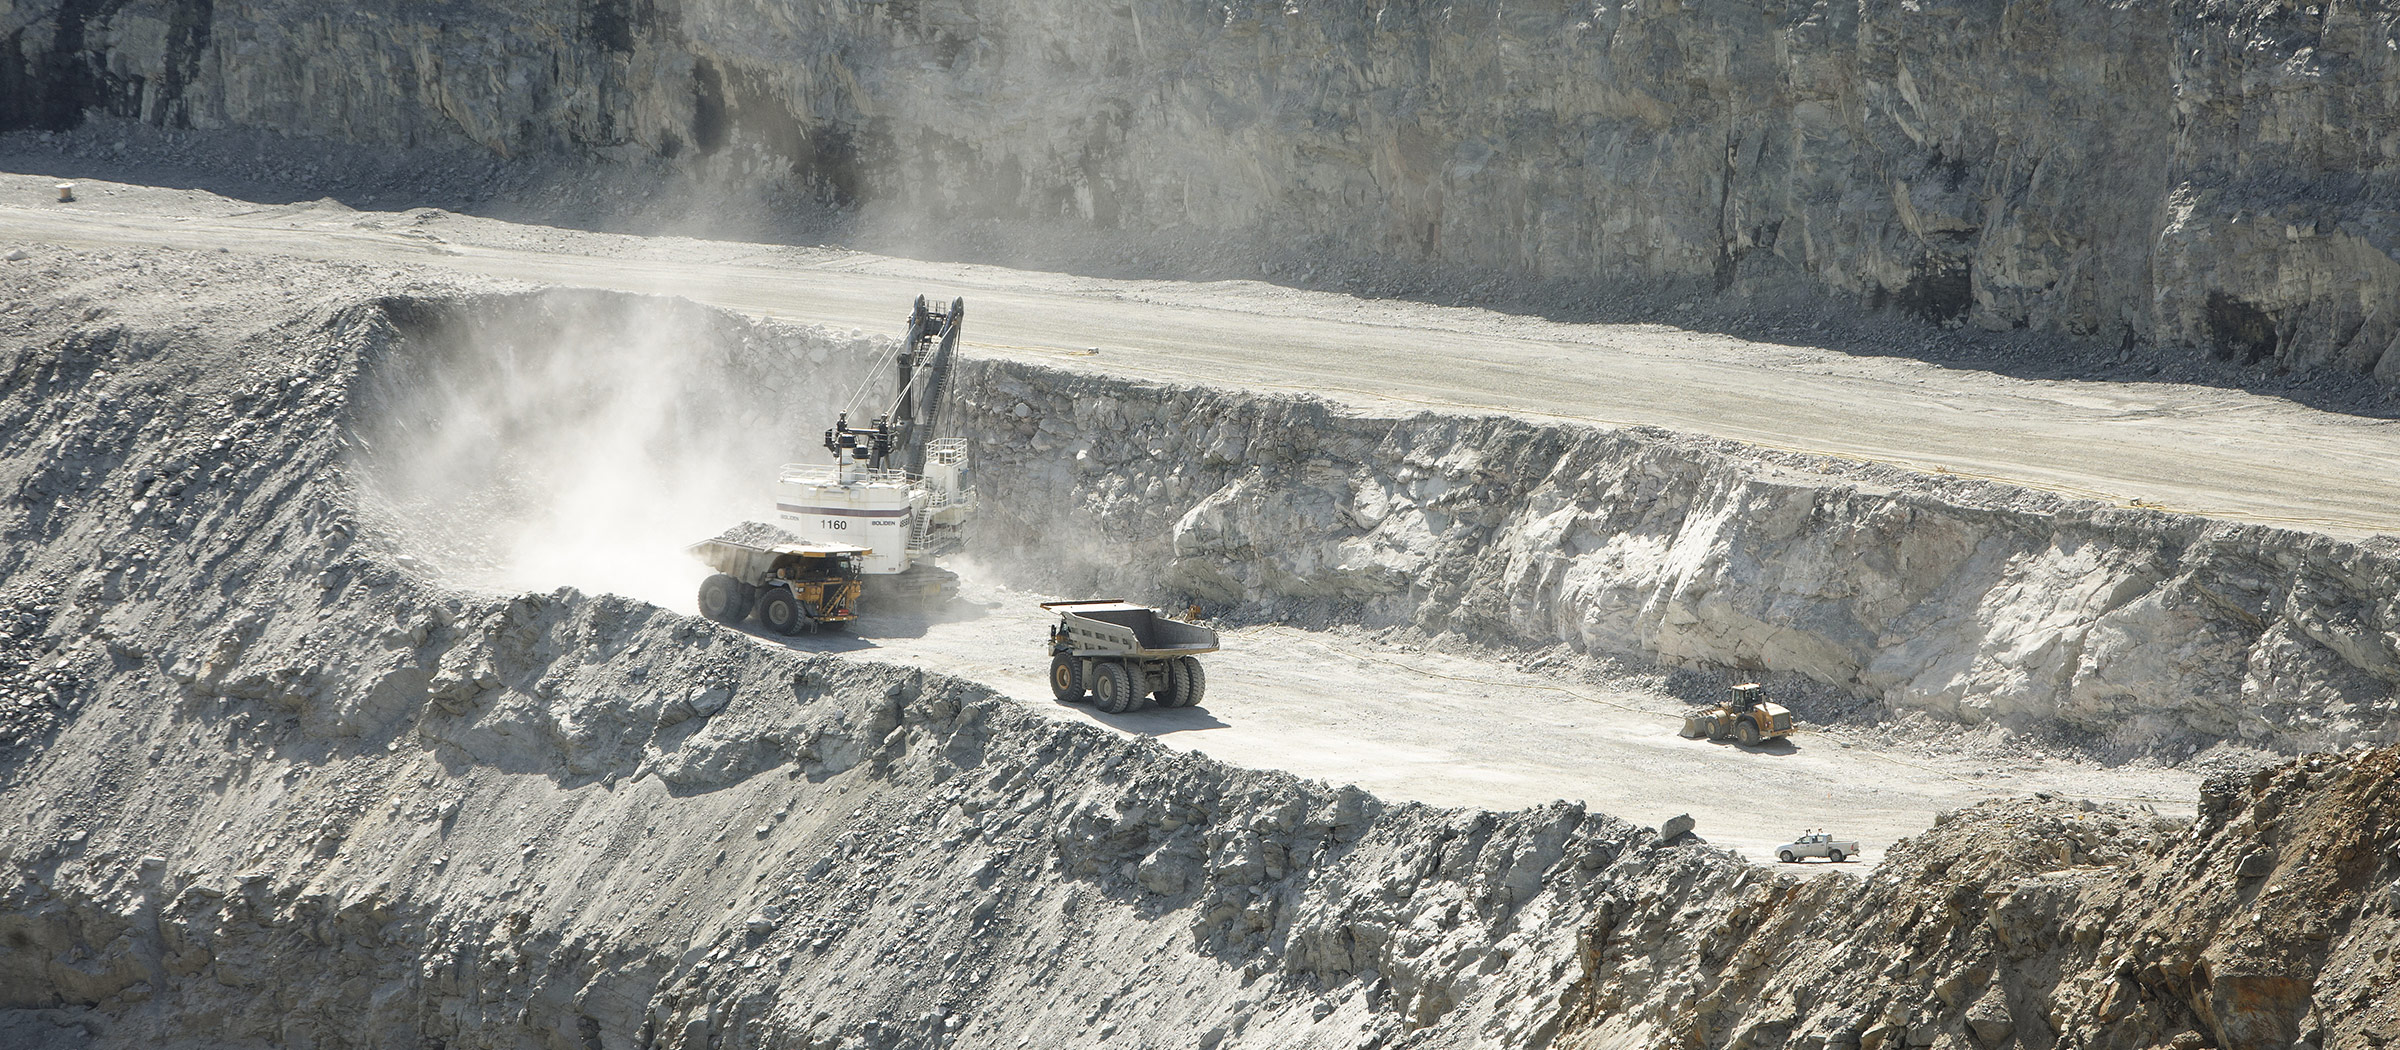 Open pit mining (photo)